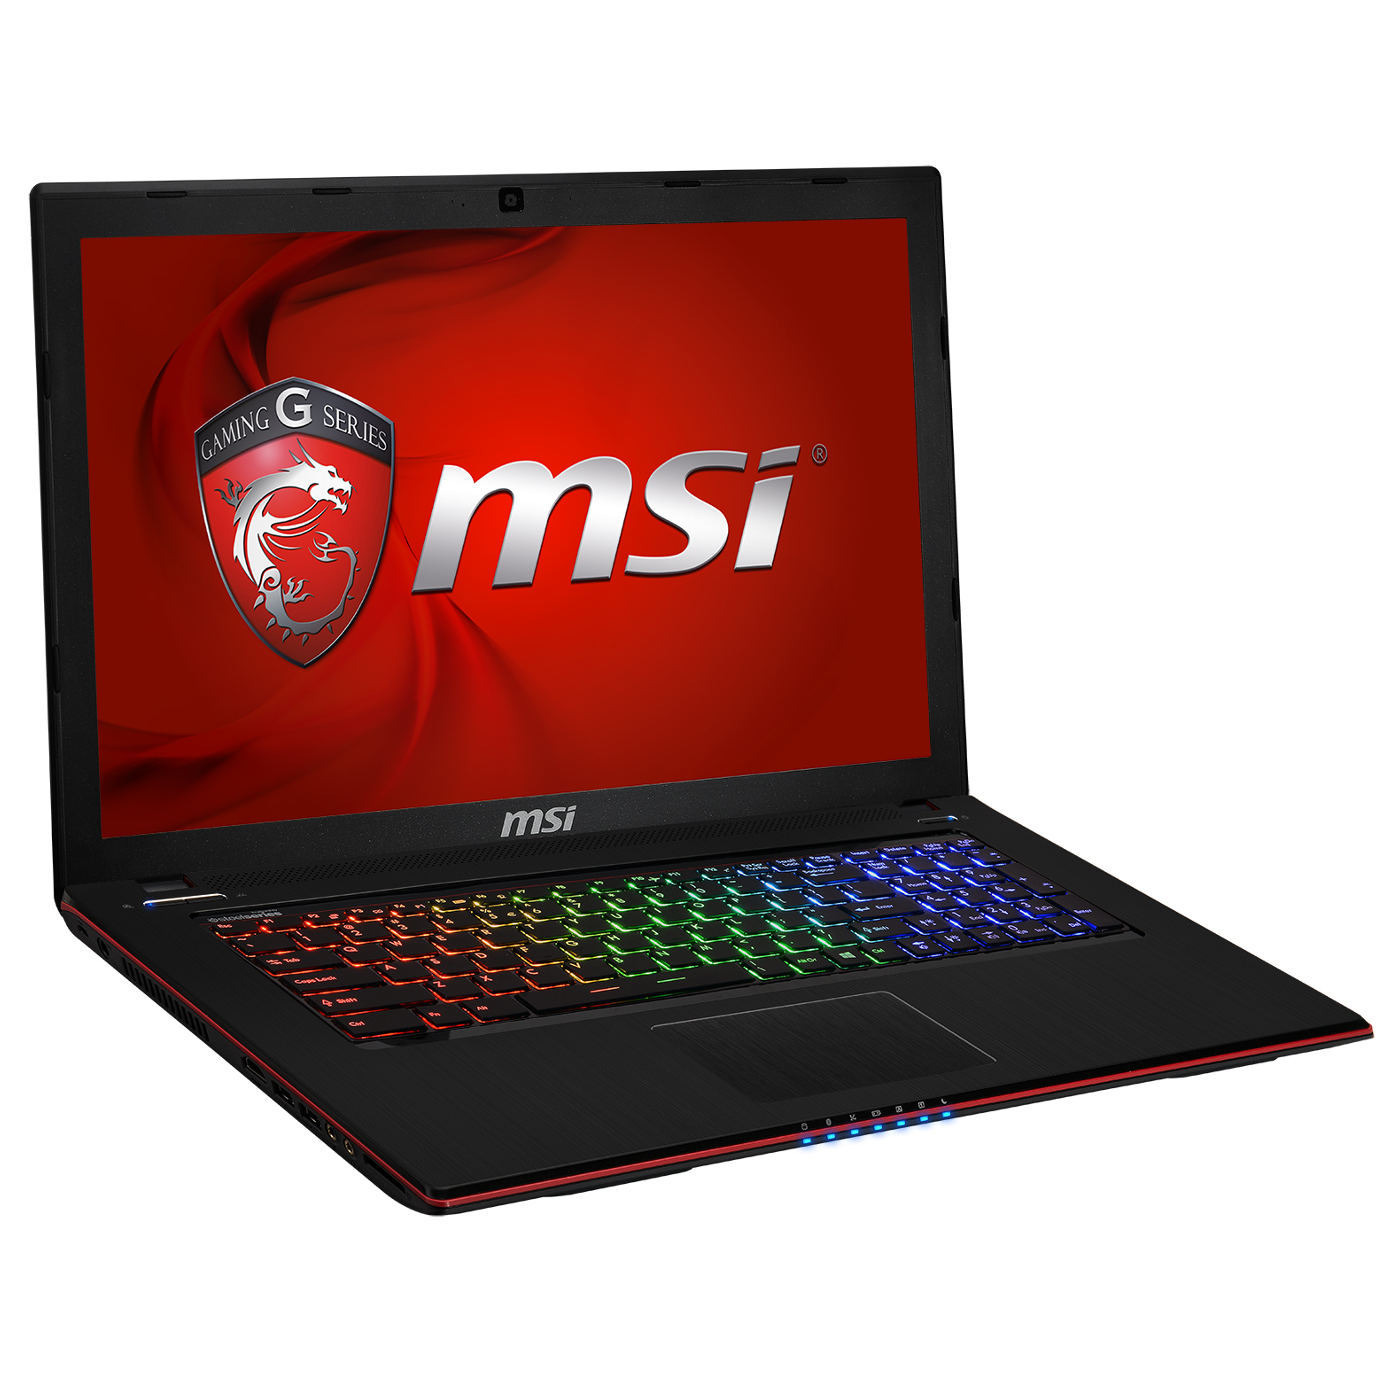 "PC portable MSI GE70 2PE-206XFR Apache Pro Intel Core i5-4200H 4 Go 1 To 17.3"" LED NVIDIA GeForce GTX 860M Graveur DVD Wi-Fi AC/Bluetooth Webcam FreeDOS (garantie constructeur 1 an)"